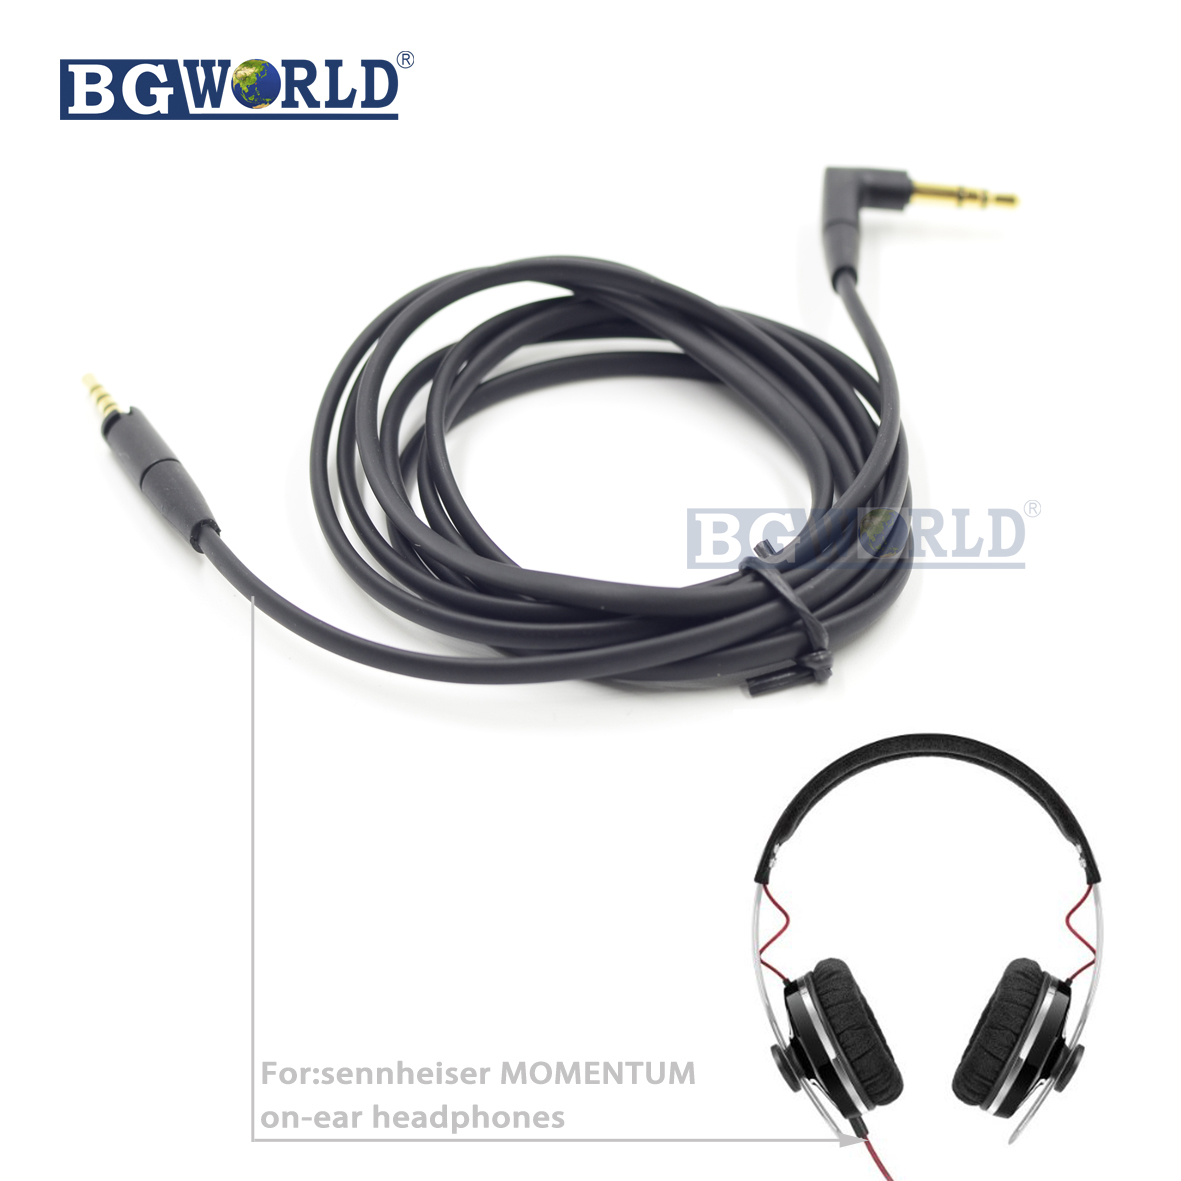 BGWORLD Replacement Audio Cable line cord wire For Sennheiser Momentum 1.0 2.0 Over On-Ear Headphones headset part line art